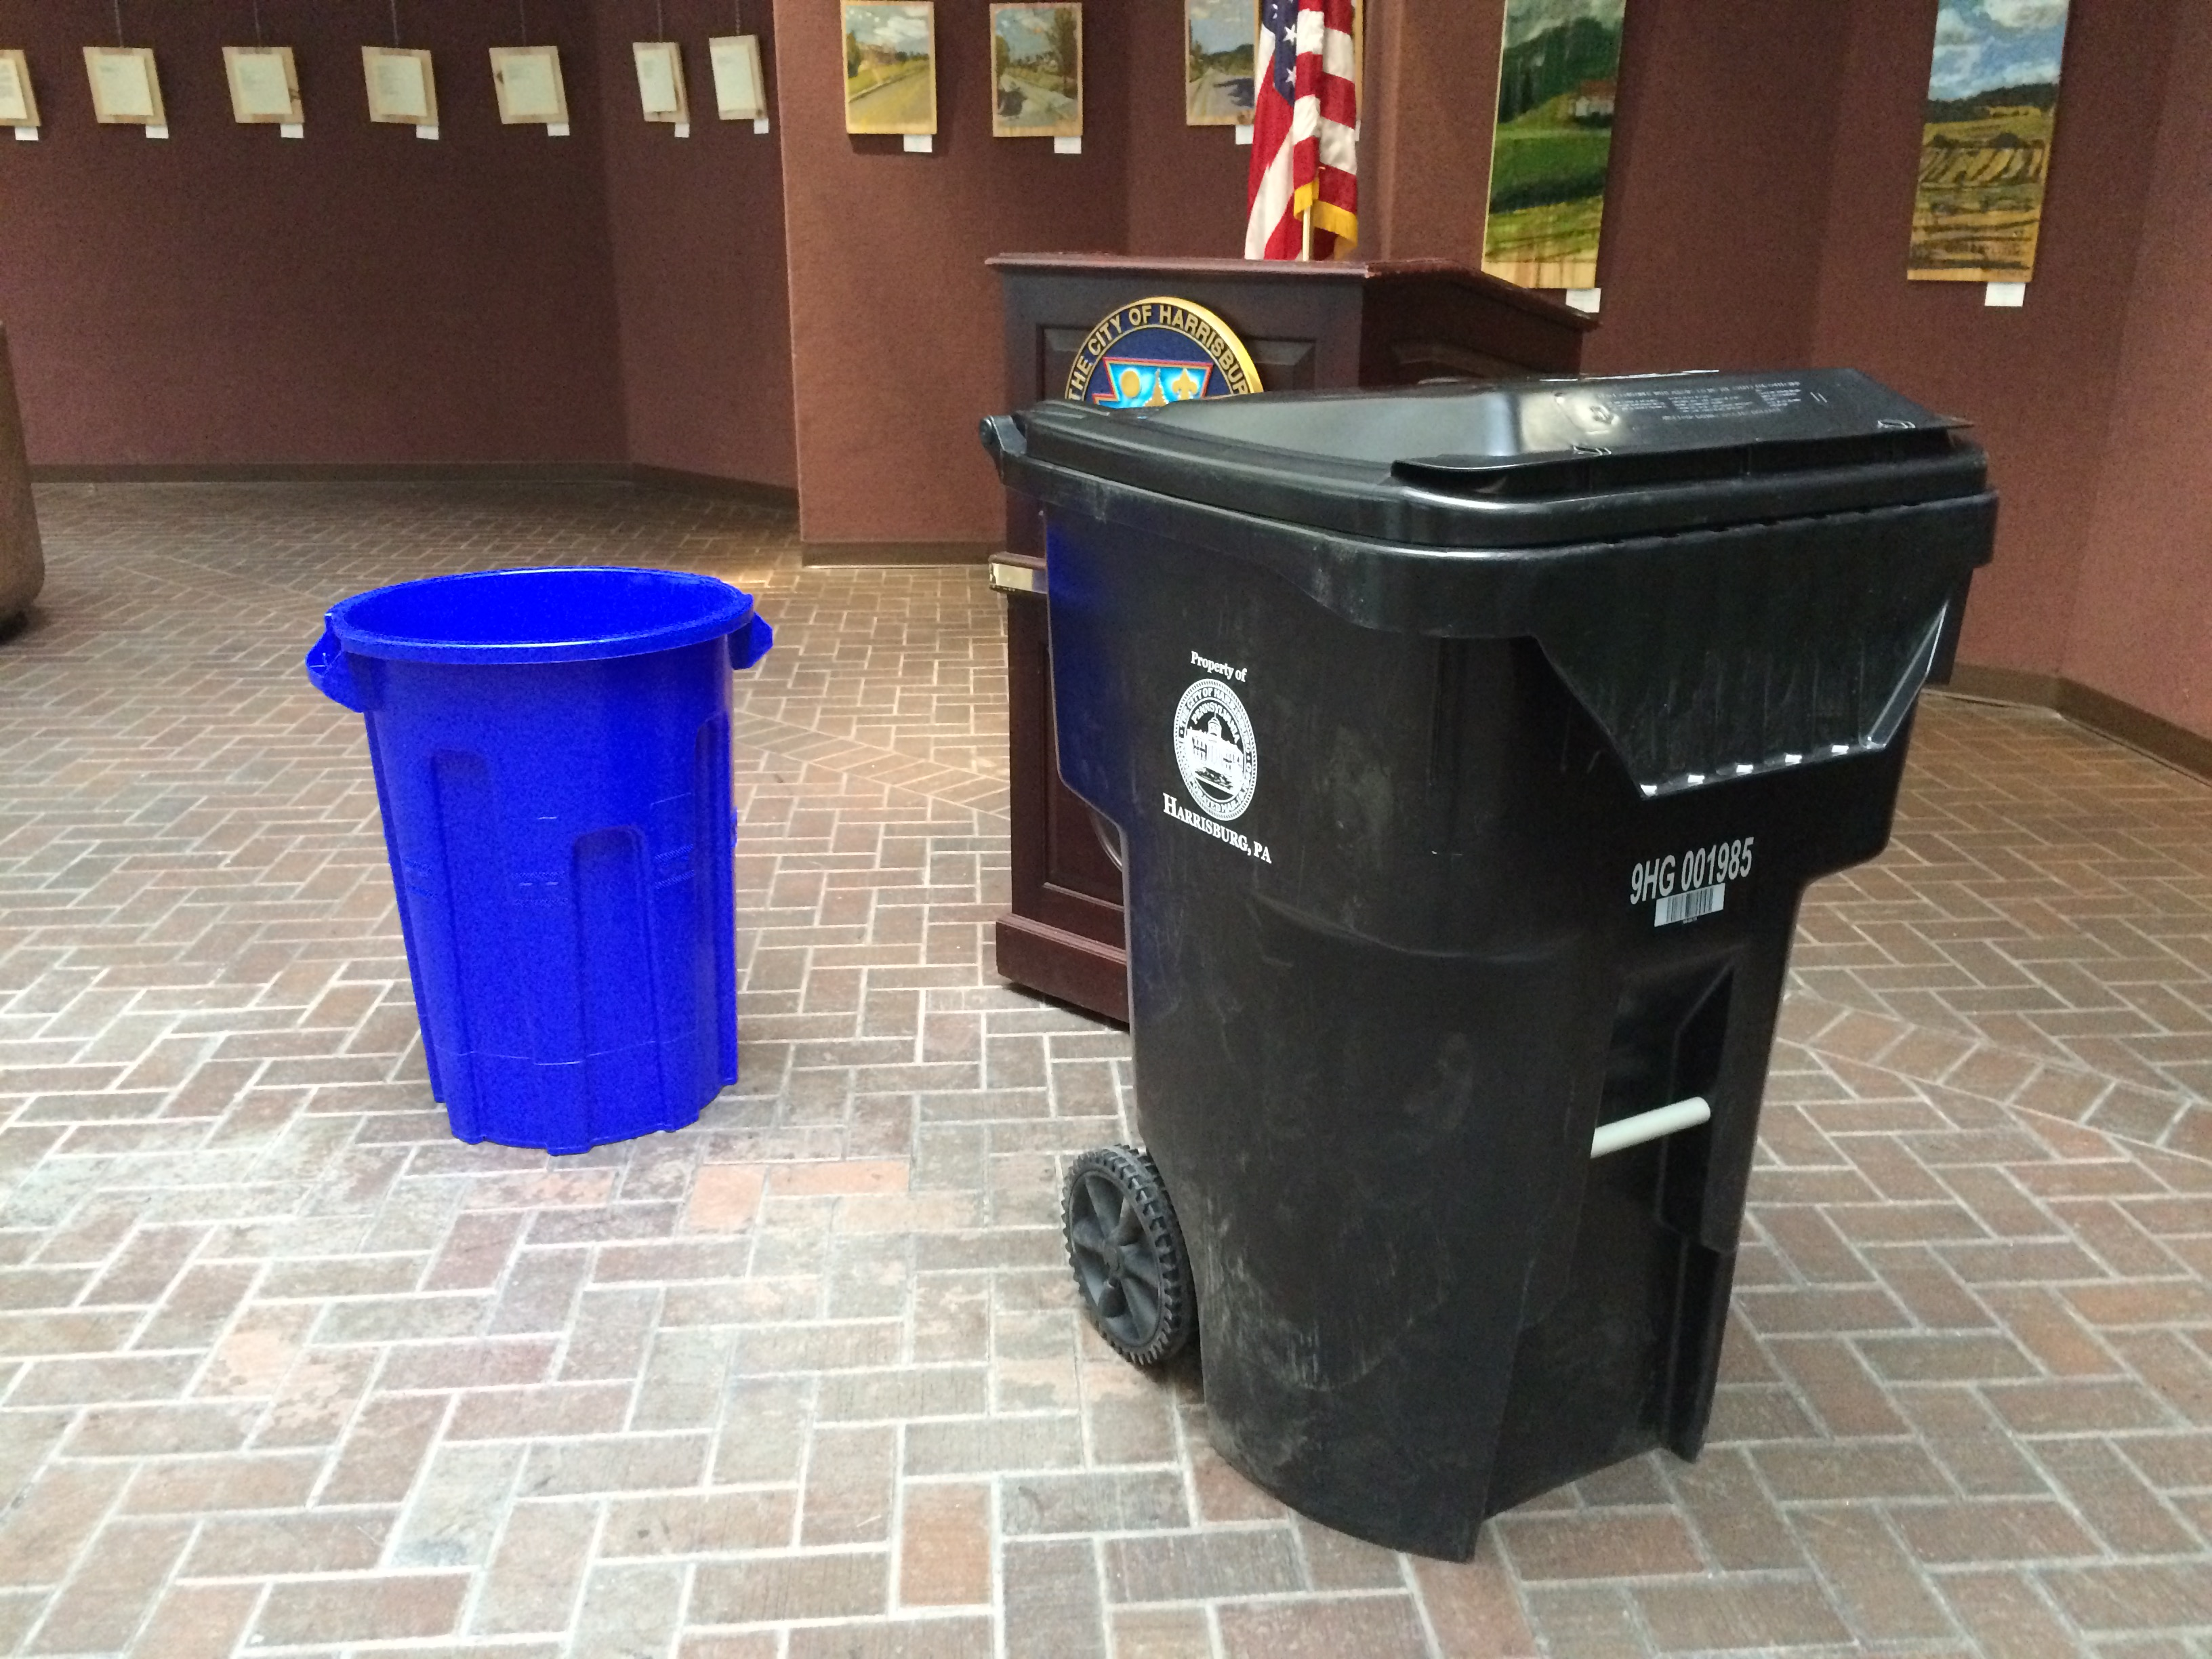 Cool Trash Bins New Trash Bins Hoped To Fight Litter Increase Recycling Theburg